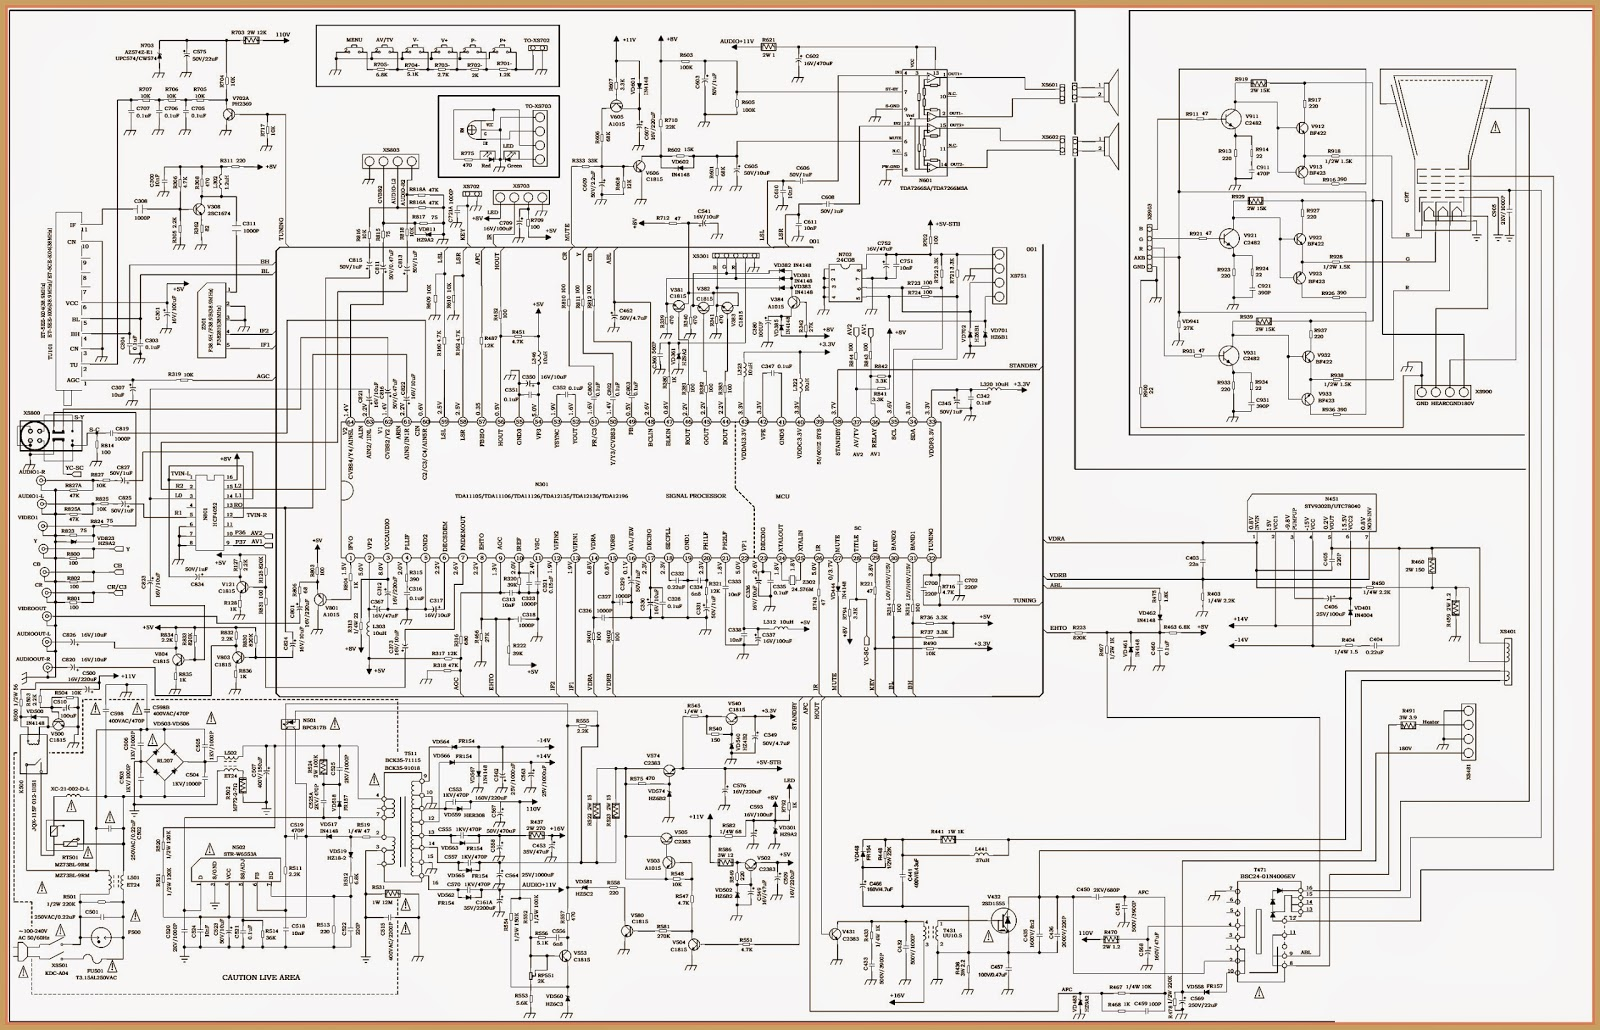 Tv Tuner Card Circuit Diagram 2000 Lincoln Town Car Wiring Color Kit Full Tda 11106 Stv9302 Based